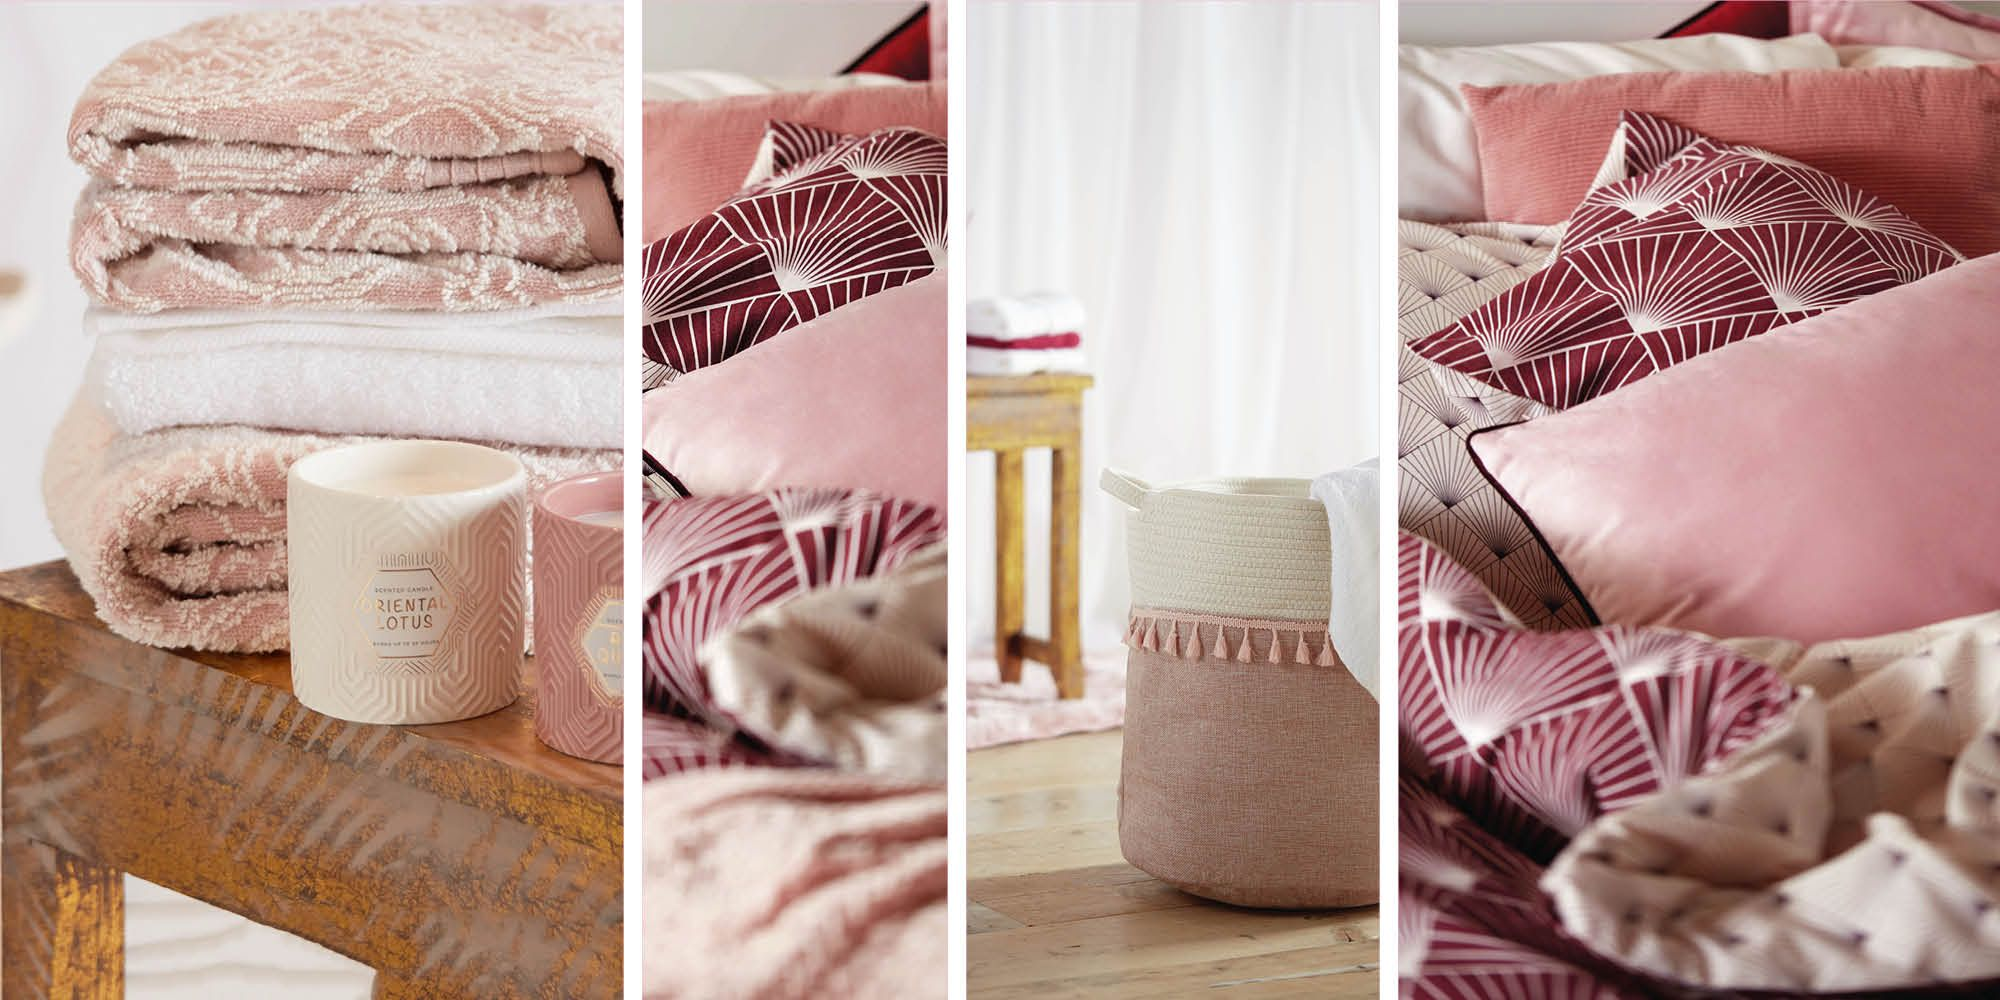 Primark's new A/W homeware collection is full of dusky pink tones